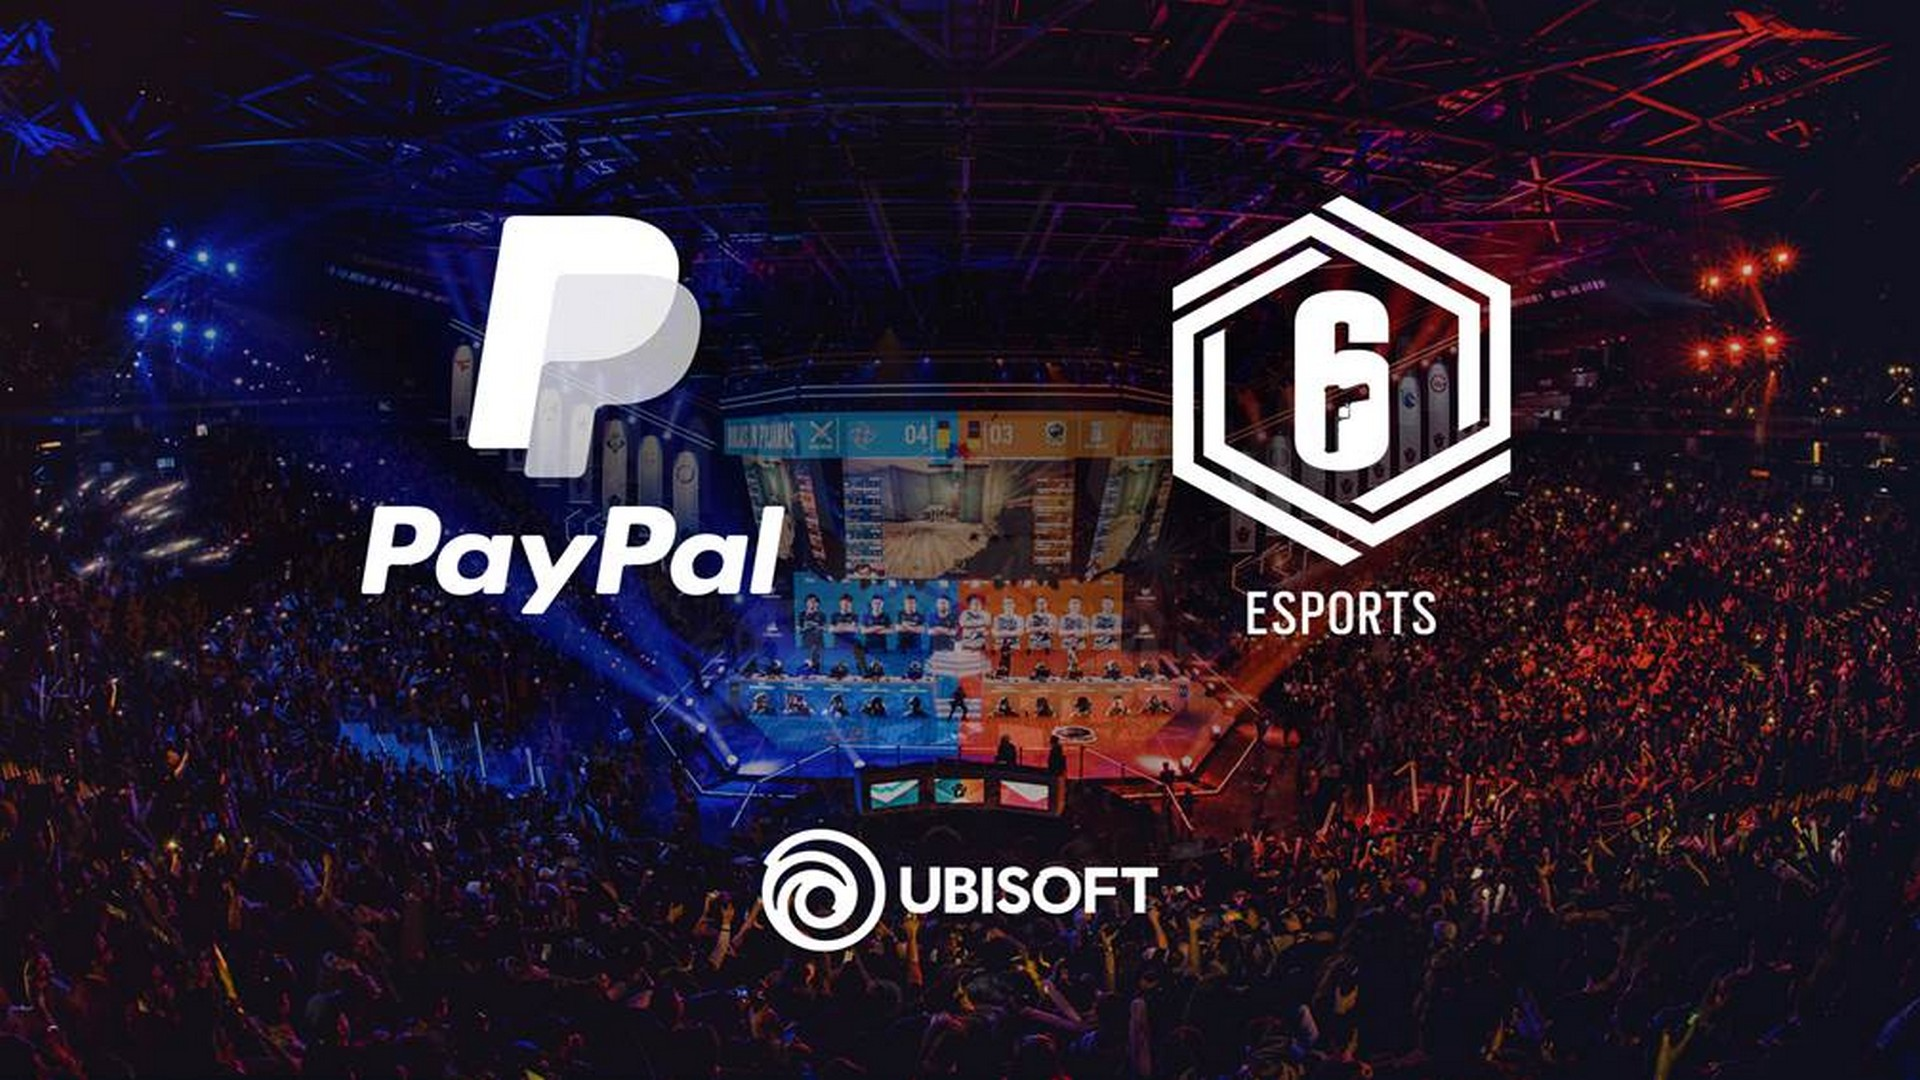 Ubisoft And PayPal Renew Their Key Partnership Across Multiple Tom Clancy's Rainbow Six Esports Competitions